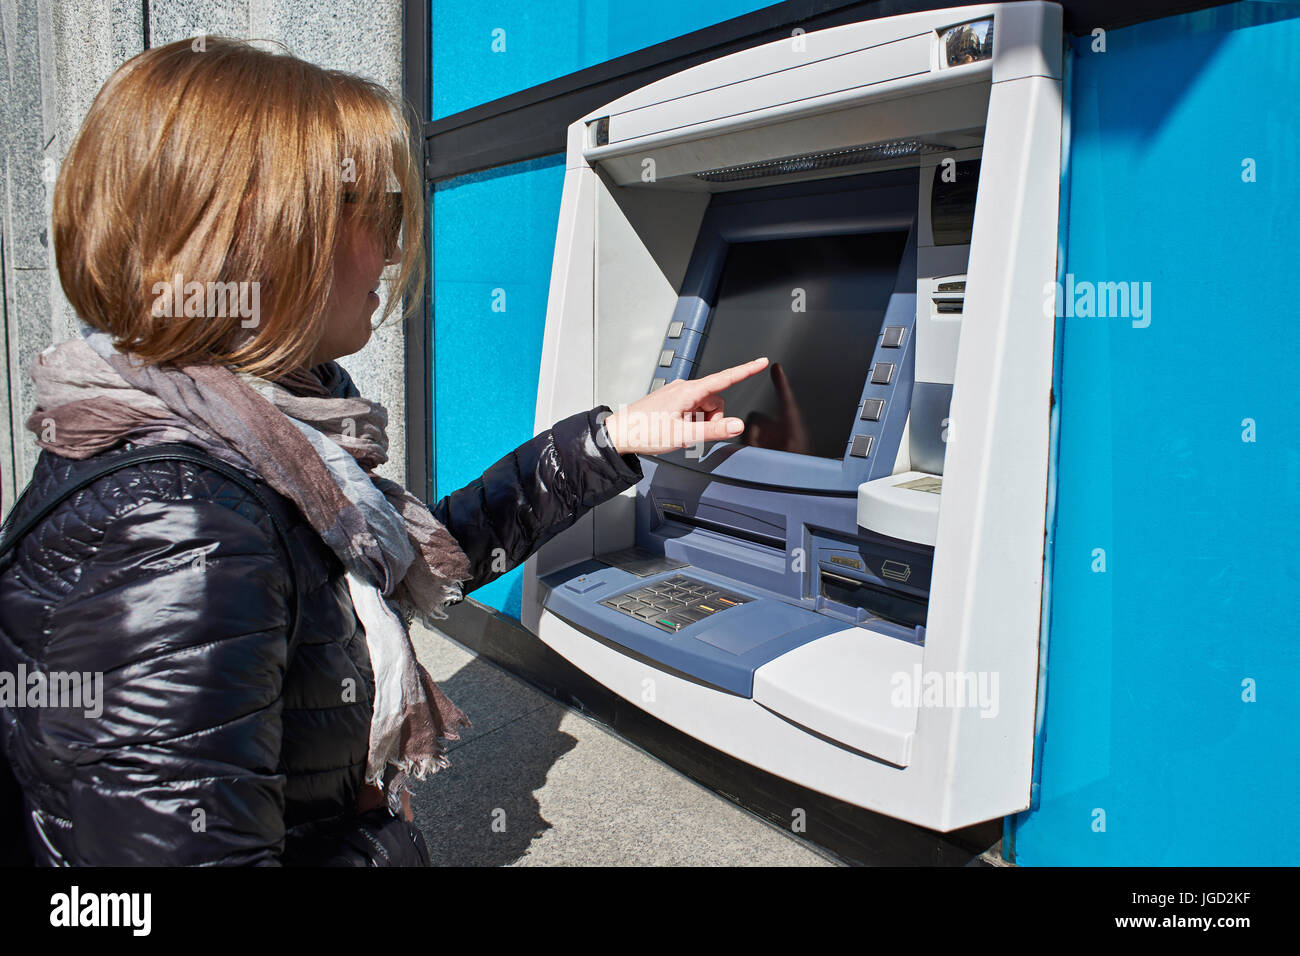 Woman uses touchscreen on ATM - Stock Image